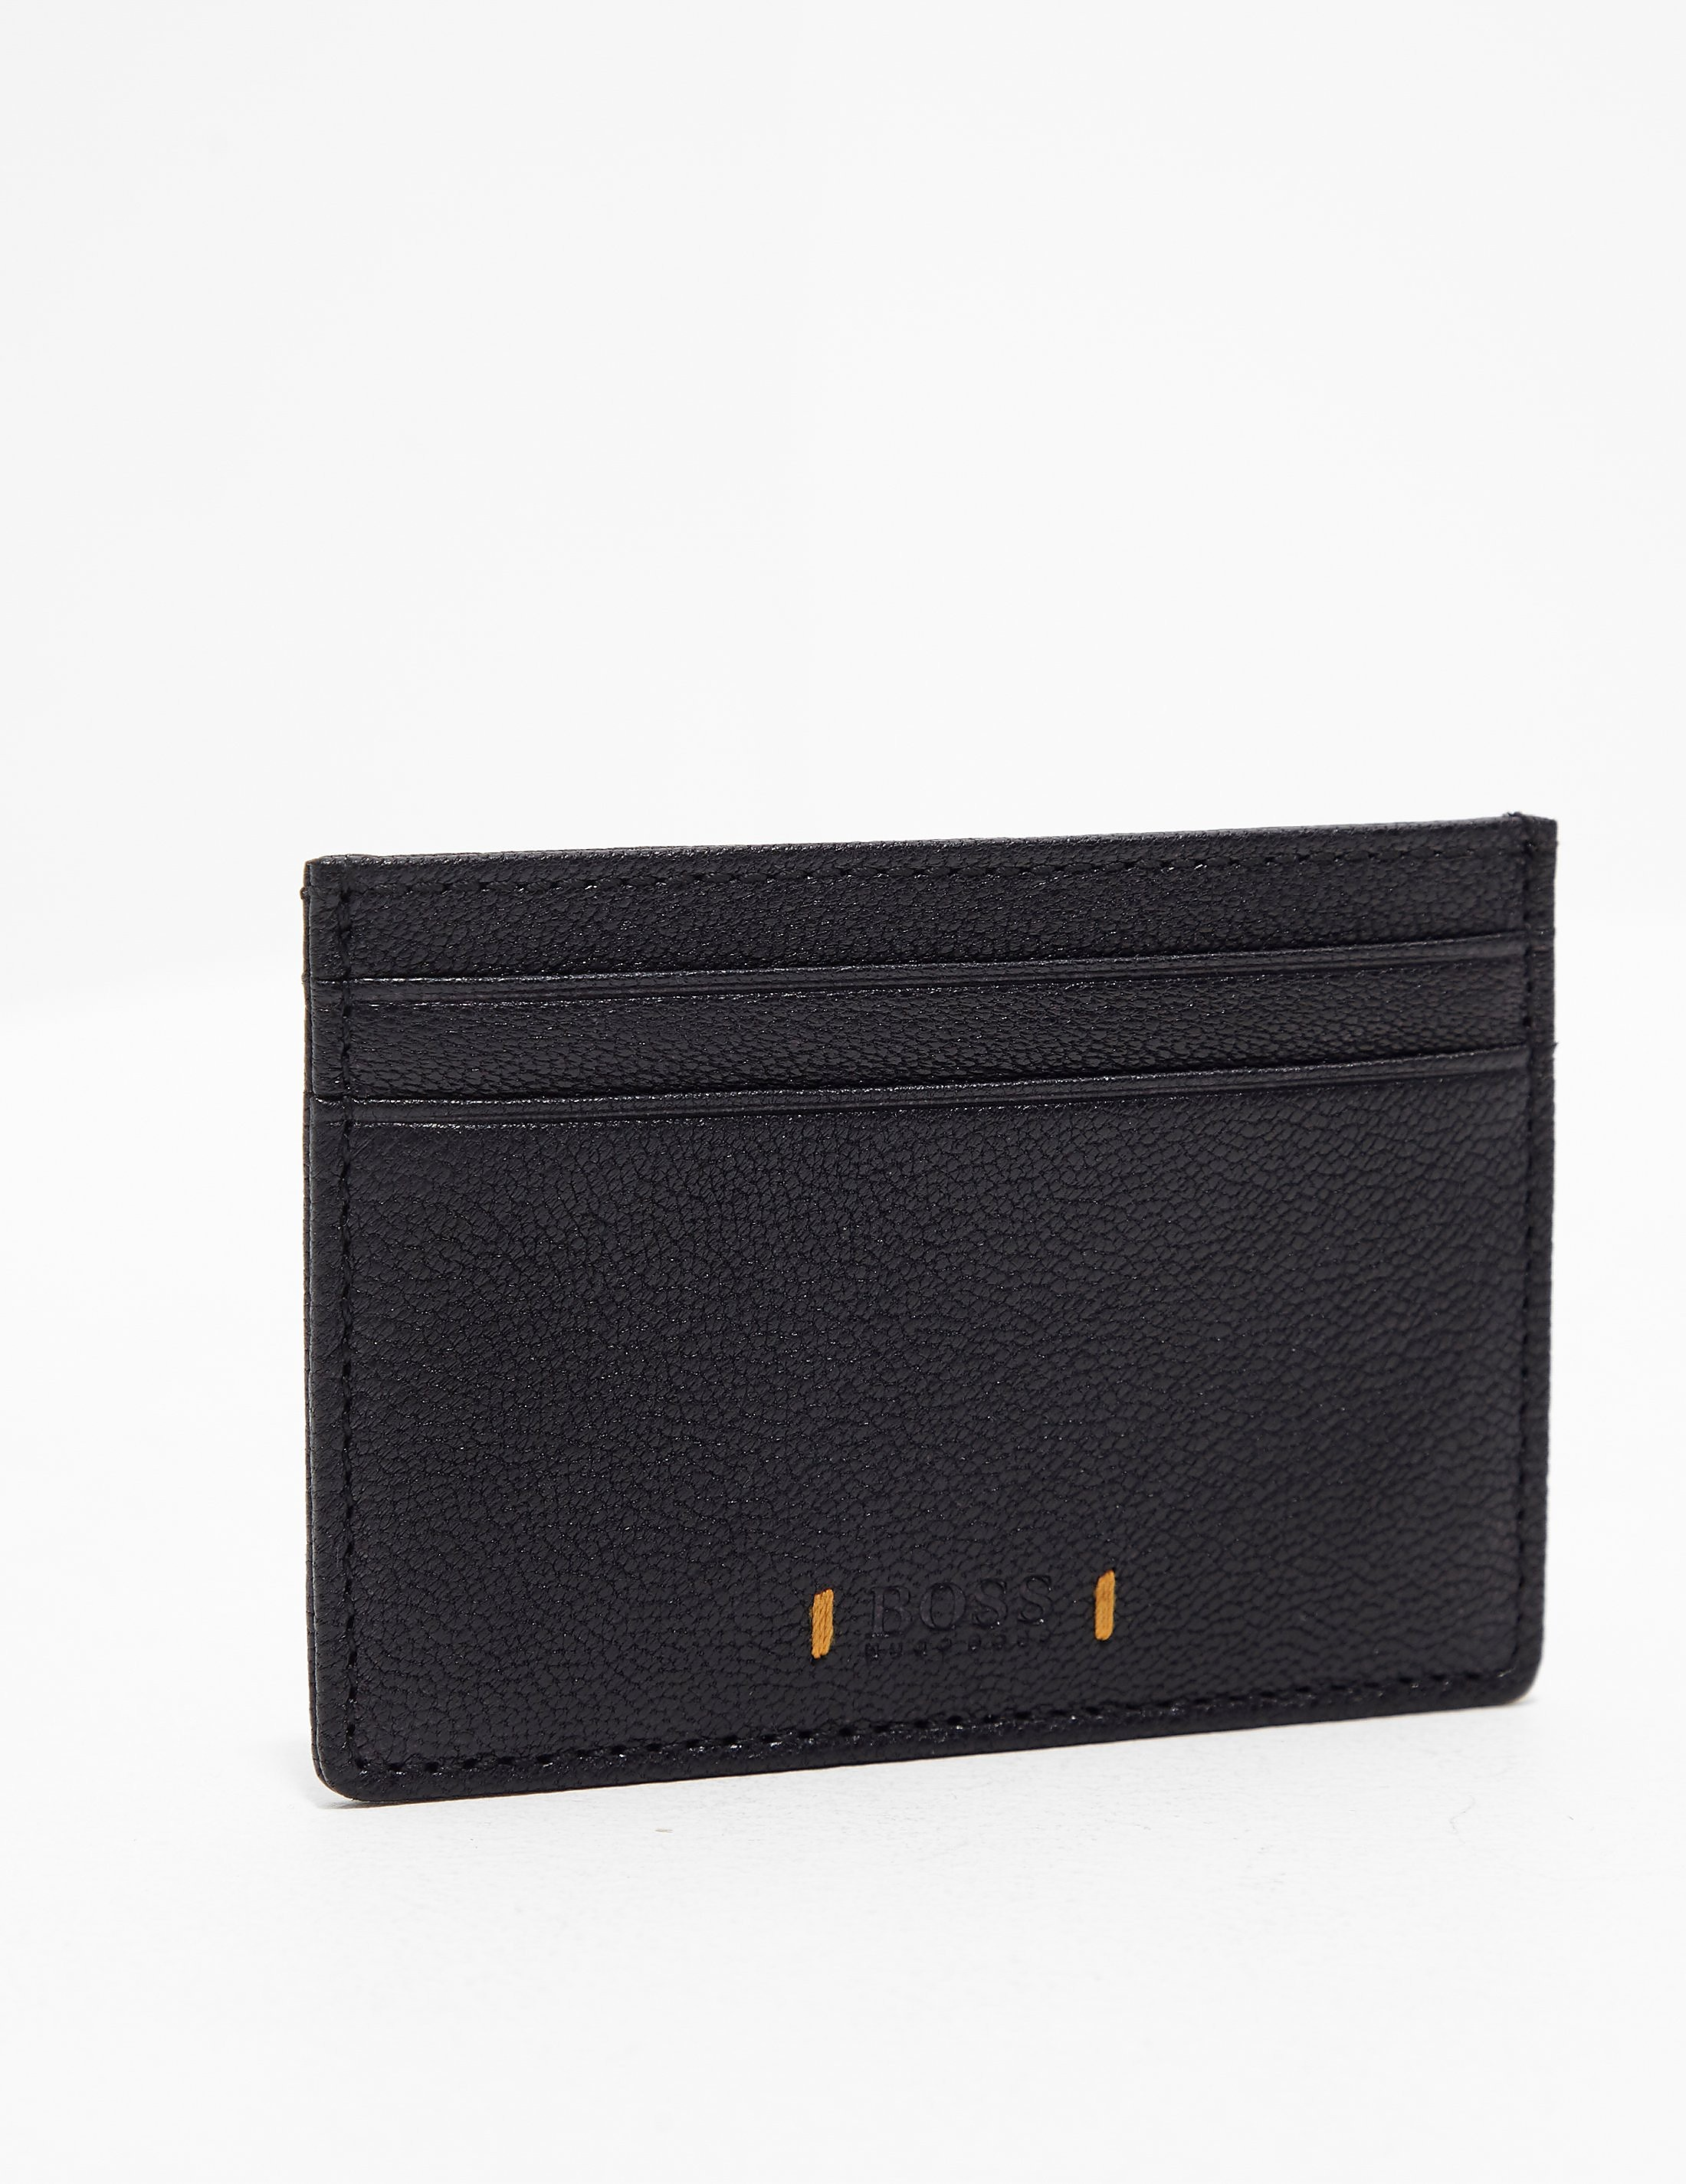 BOSS Orange Leather Card Case